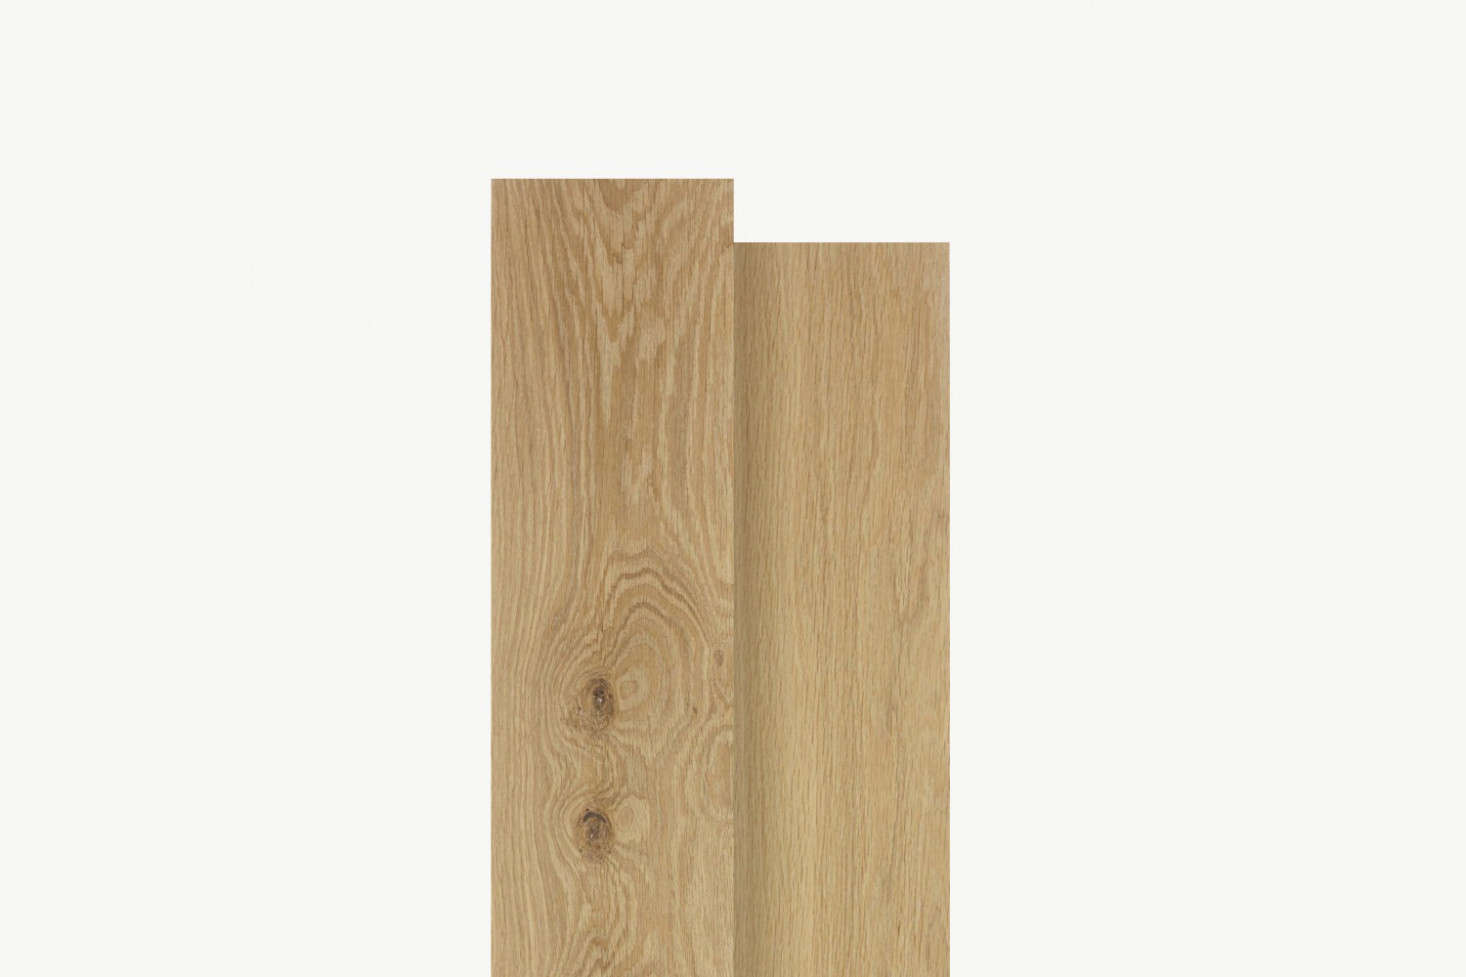 Floors throughout the house are Dinesen Oak Classic planks.